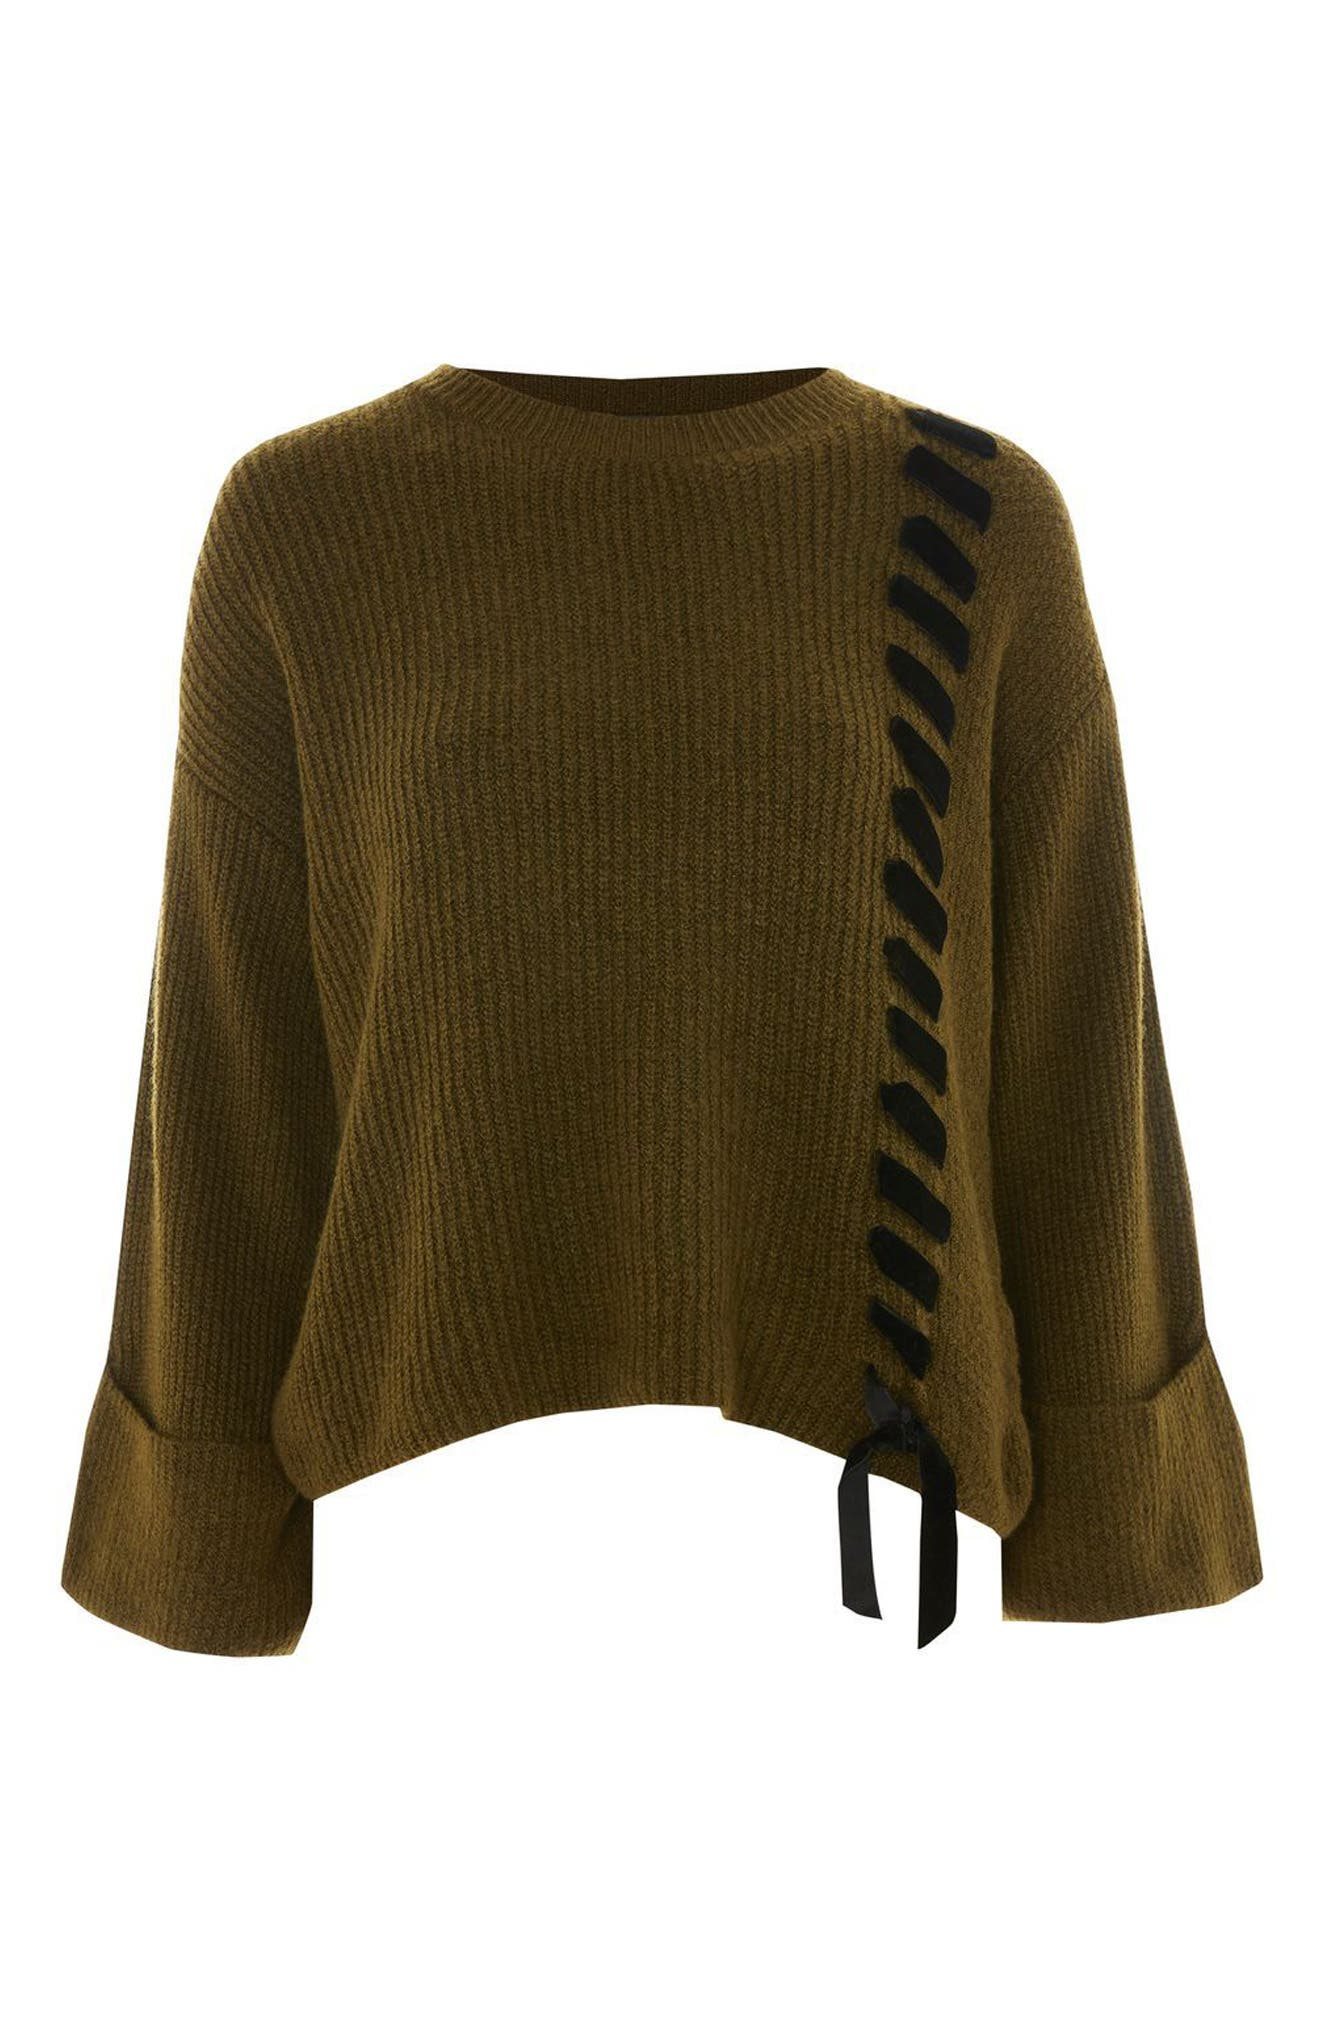 Velvet Ribbon Cuffed Sweater,                             Alternate thumbnail 3, color,                             301